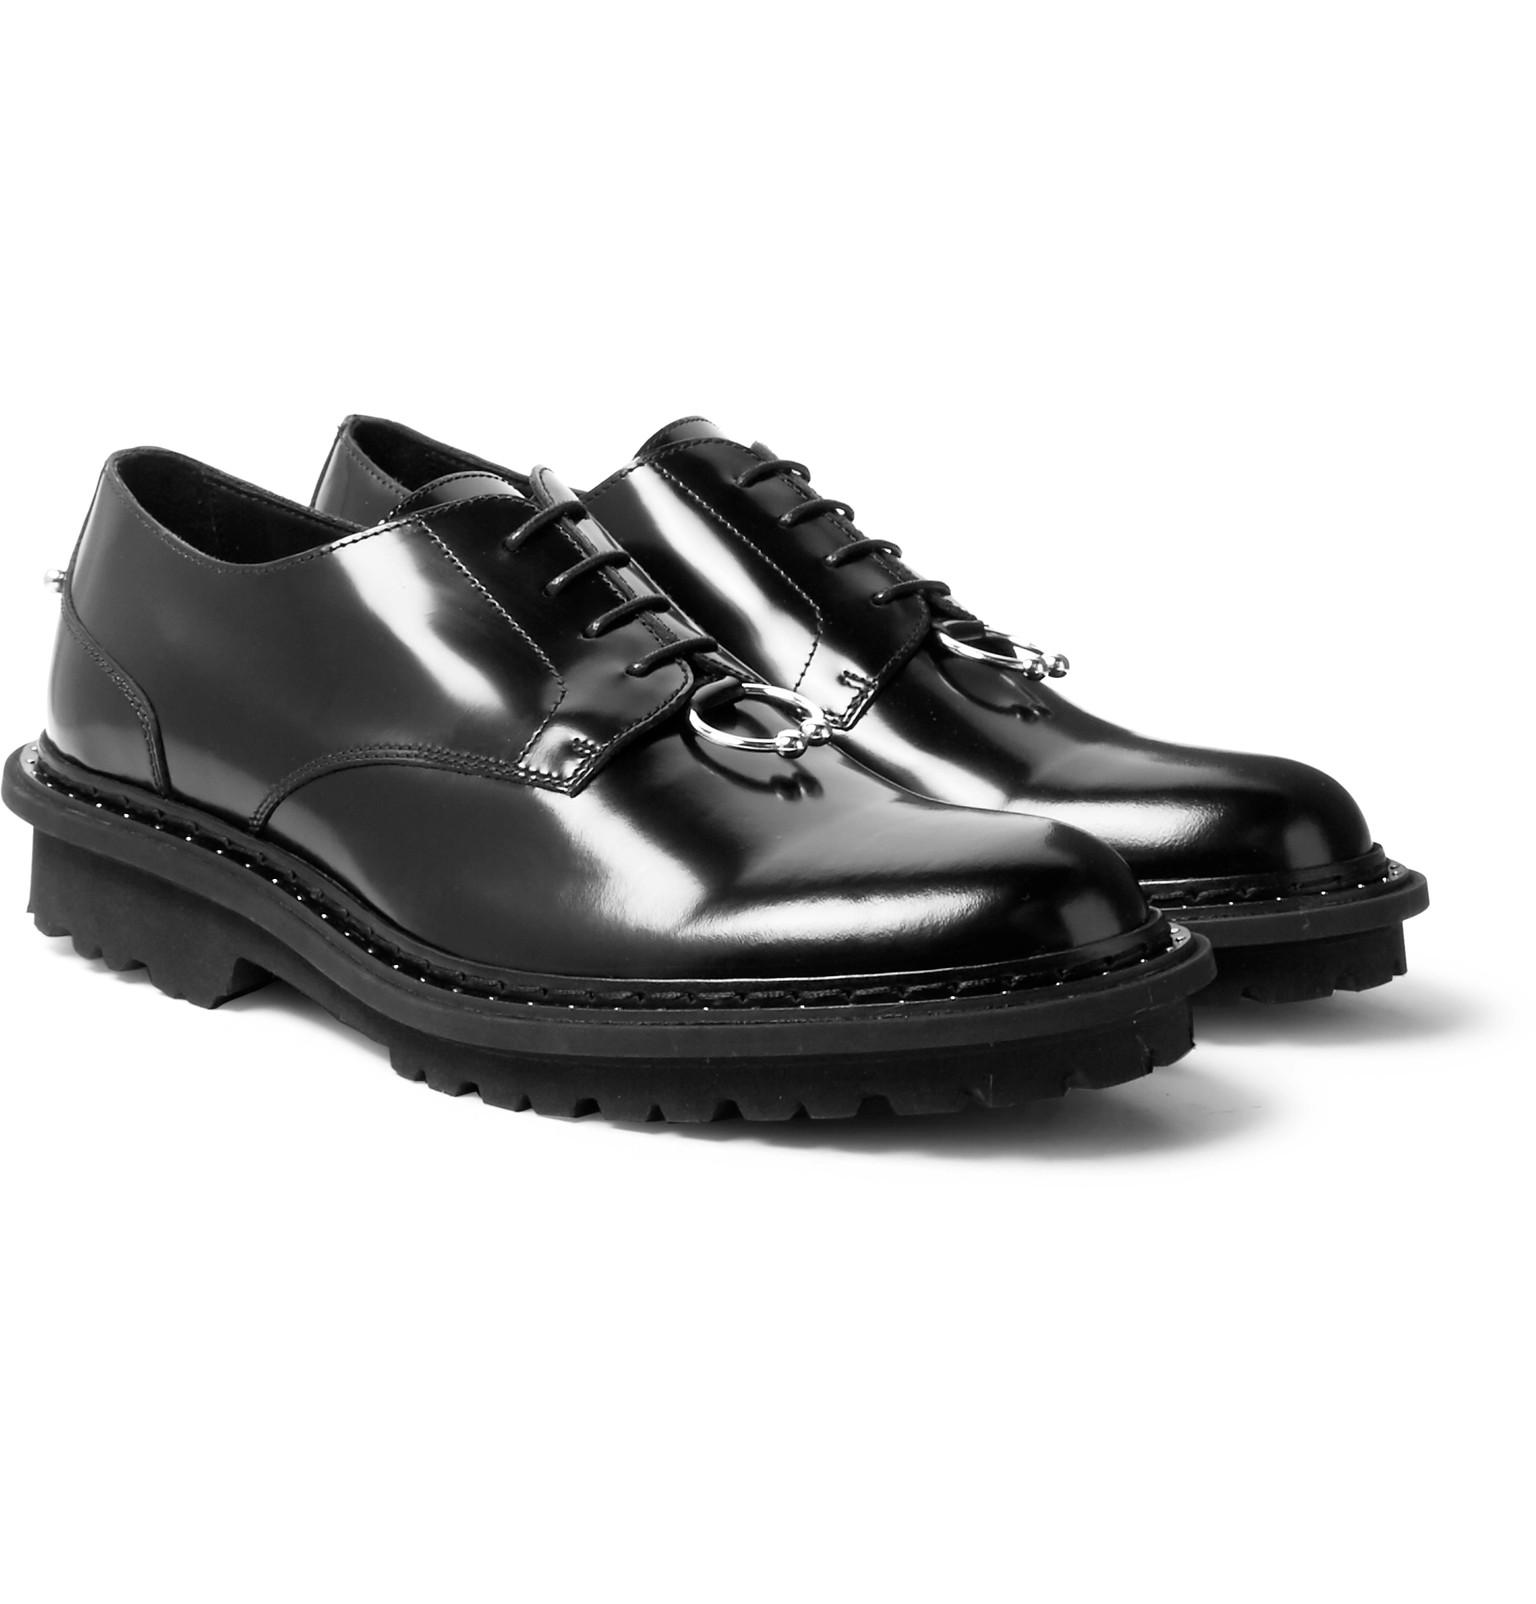 clearance low shipping fee Neil Barrett Round-Toe Leather Oxfords cheapest price cheap price cheap price outlet KGkROlTo